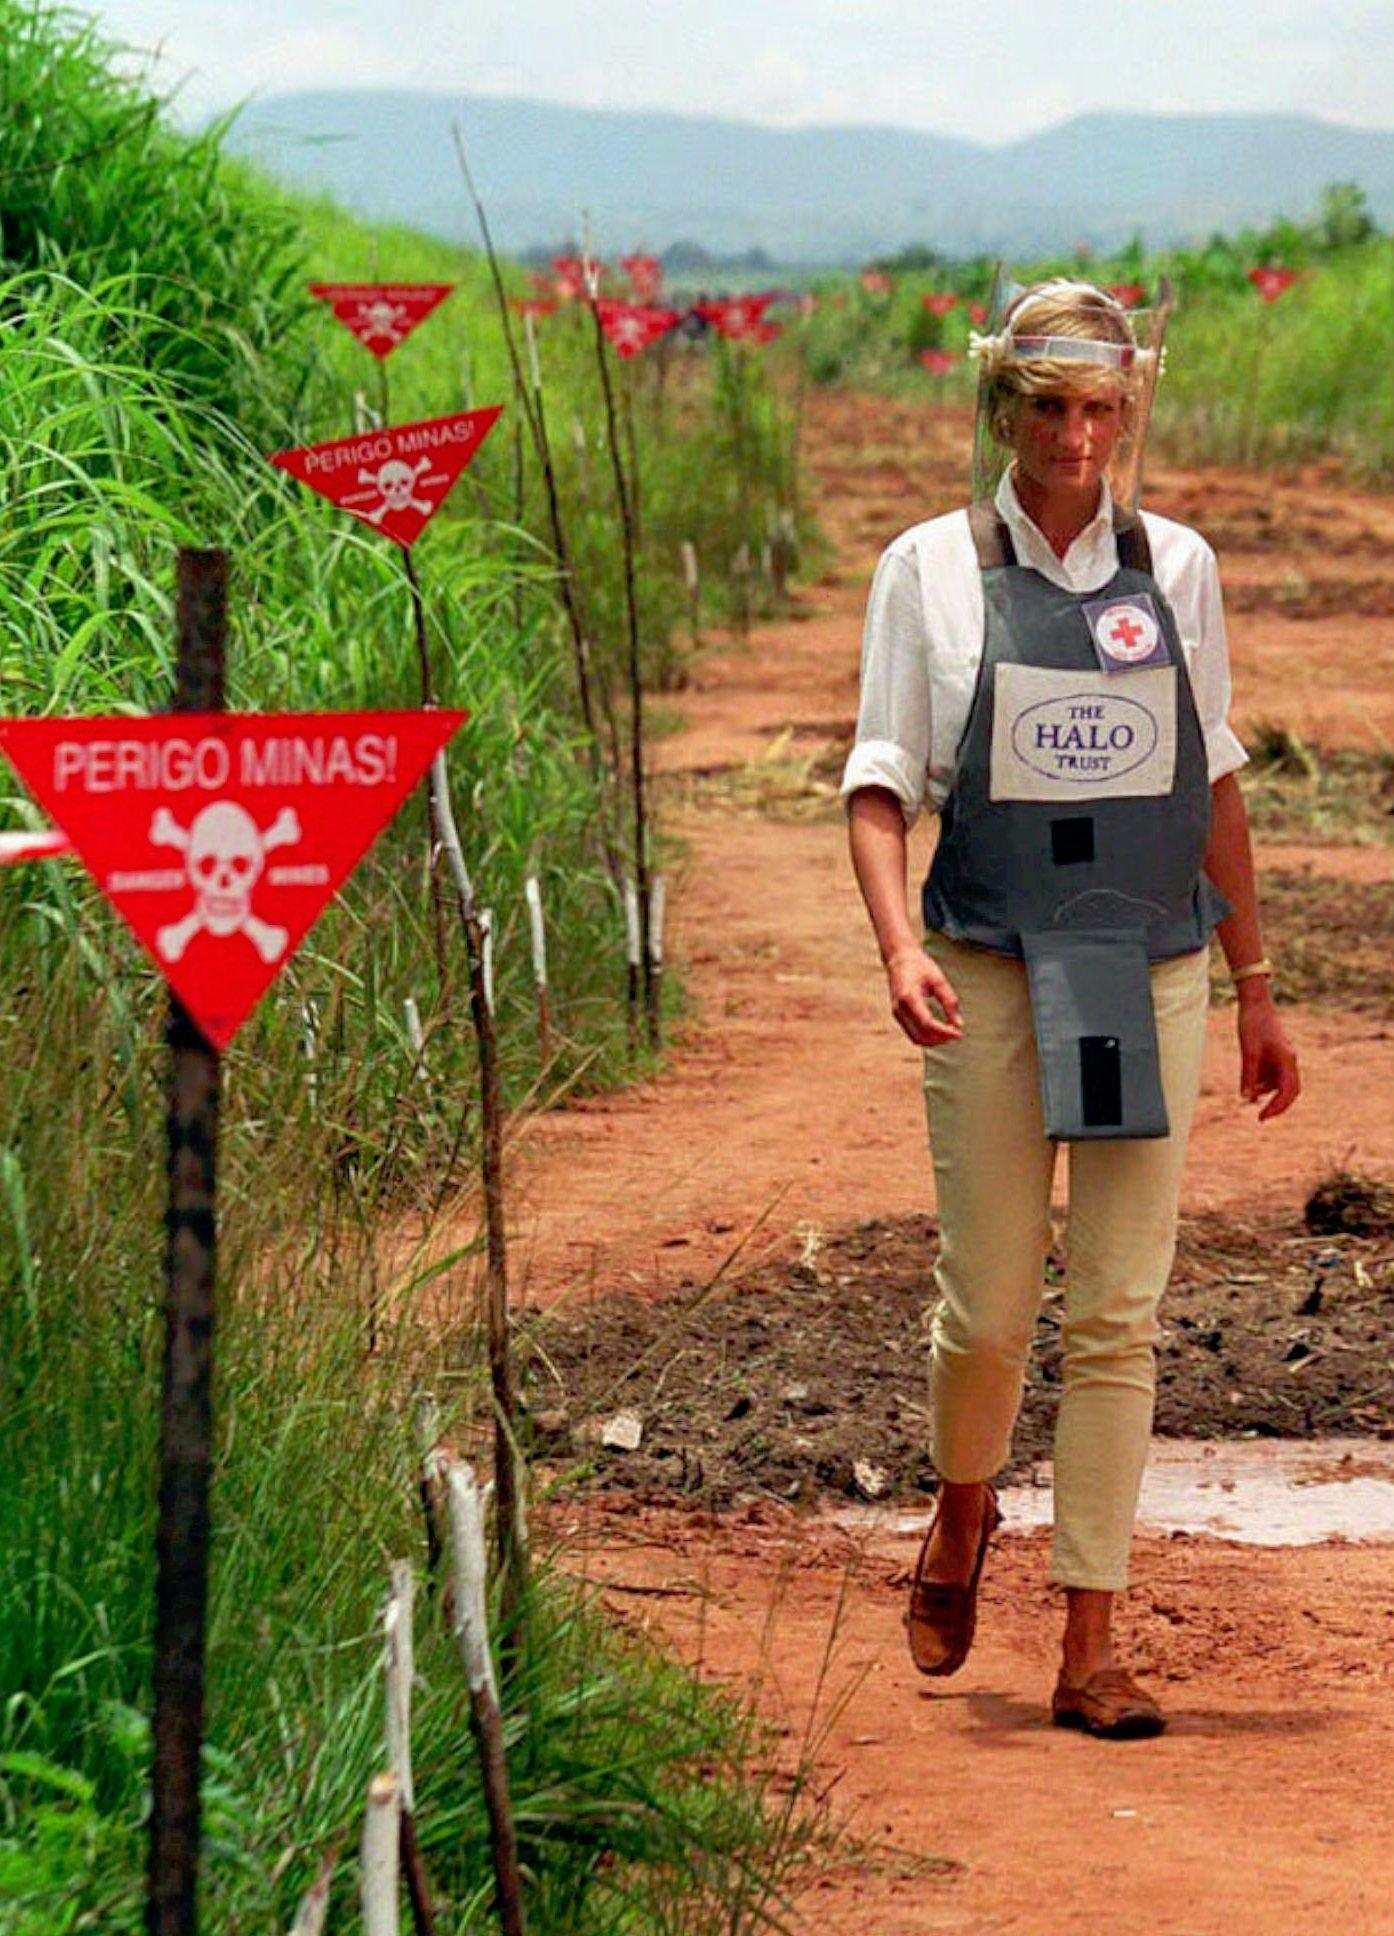 Britain's Princess Diana tours a minefield dressed in a flak jacket and face sheild in Huambo, central Angola Wednesday, Jan. 15, 1997 during a visit to Angola to see for herself the carnage mines can cause. Diana, visiting Angola for the Red Cross to draw attention to the problems caused by landmines, watched a a landmine clearing demonstration in one of Angola's most densely-mined area. (AP Photo/John Stillwell)